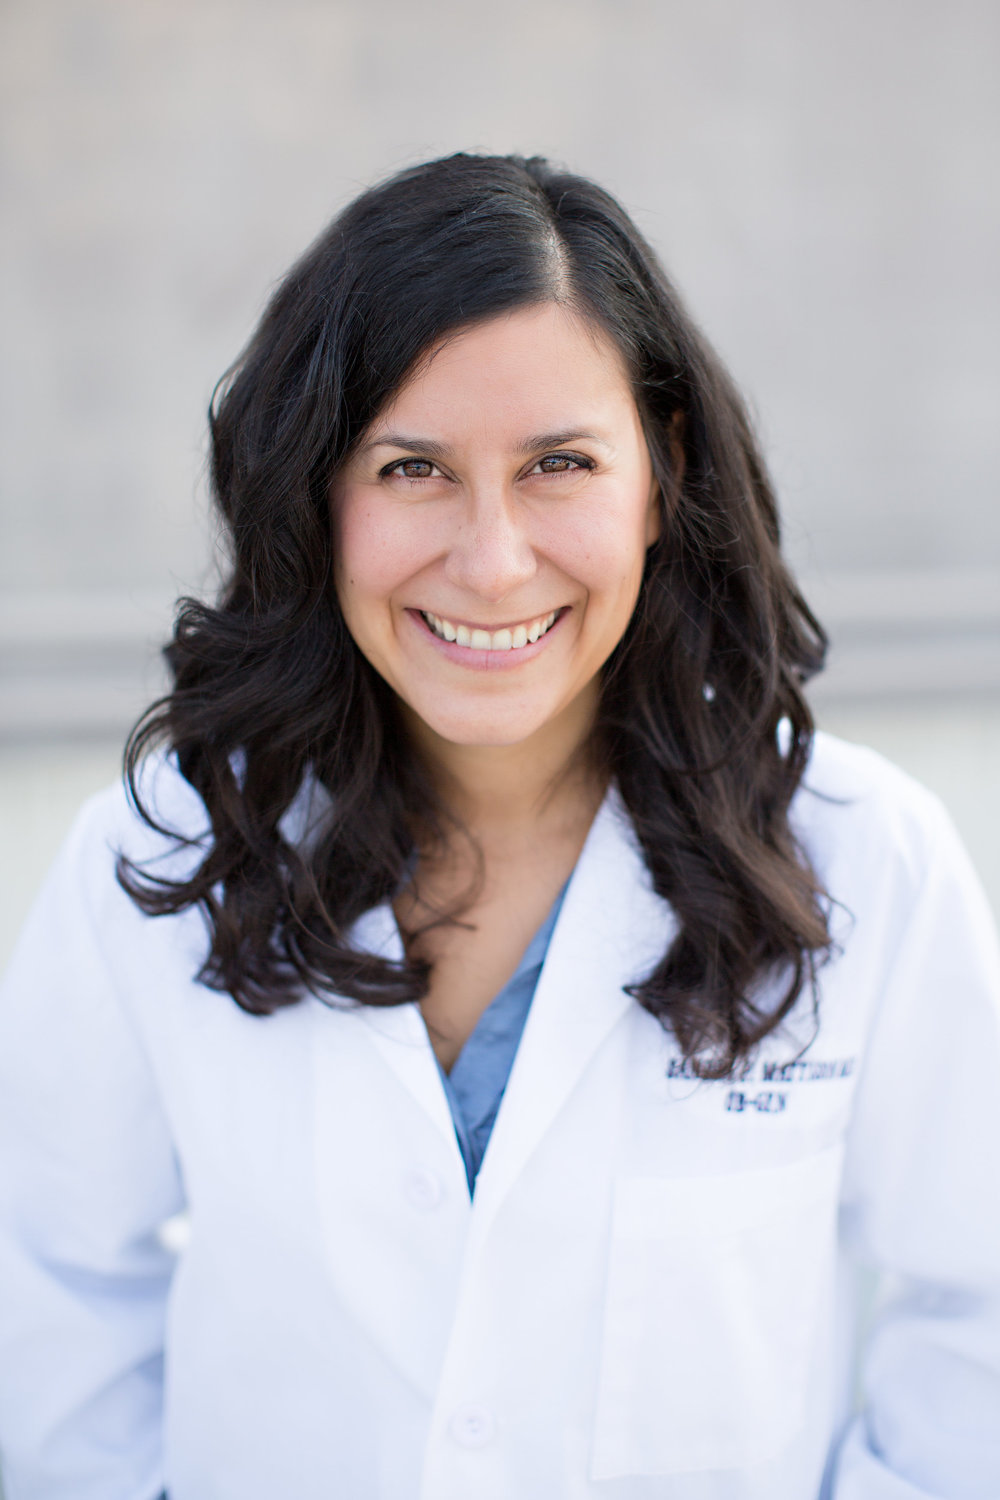 Dr. Mattison  specializes in obstetrics and gynecology.